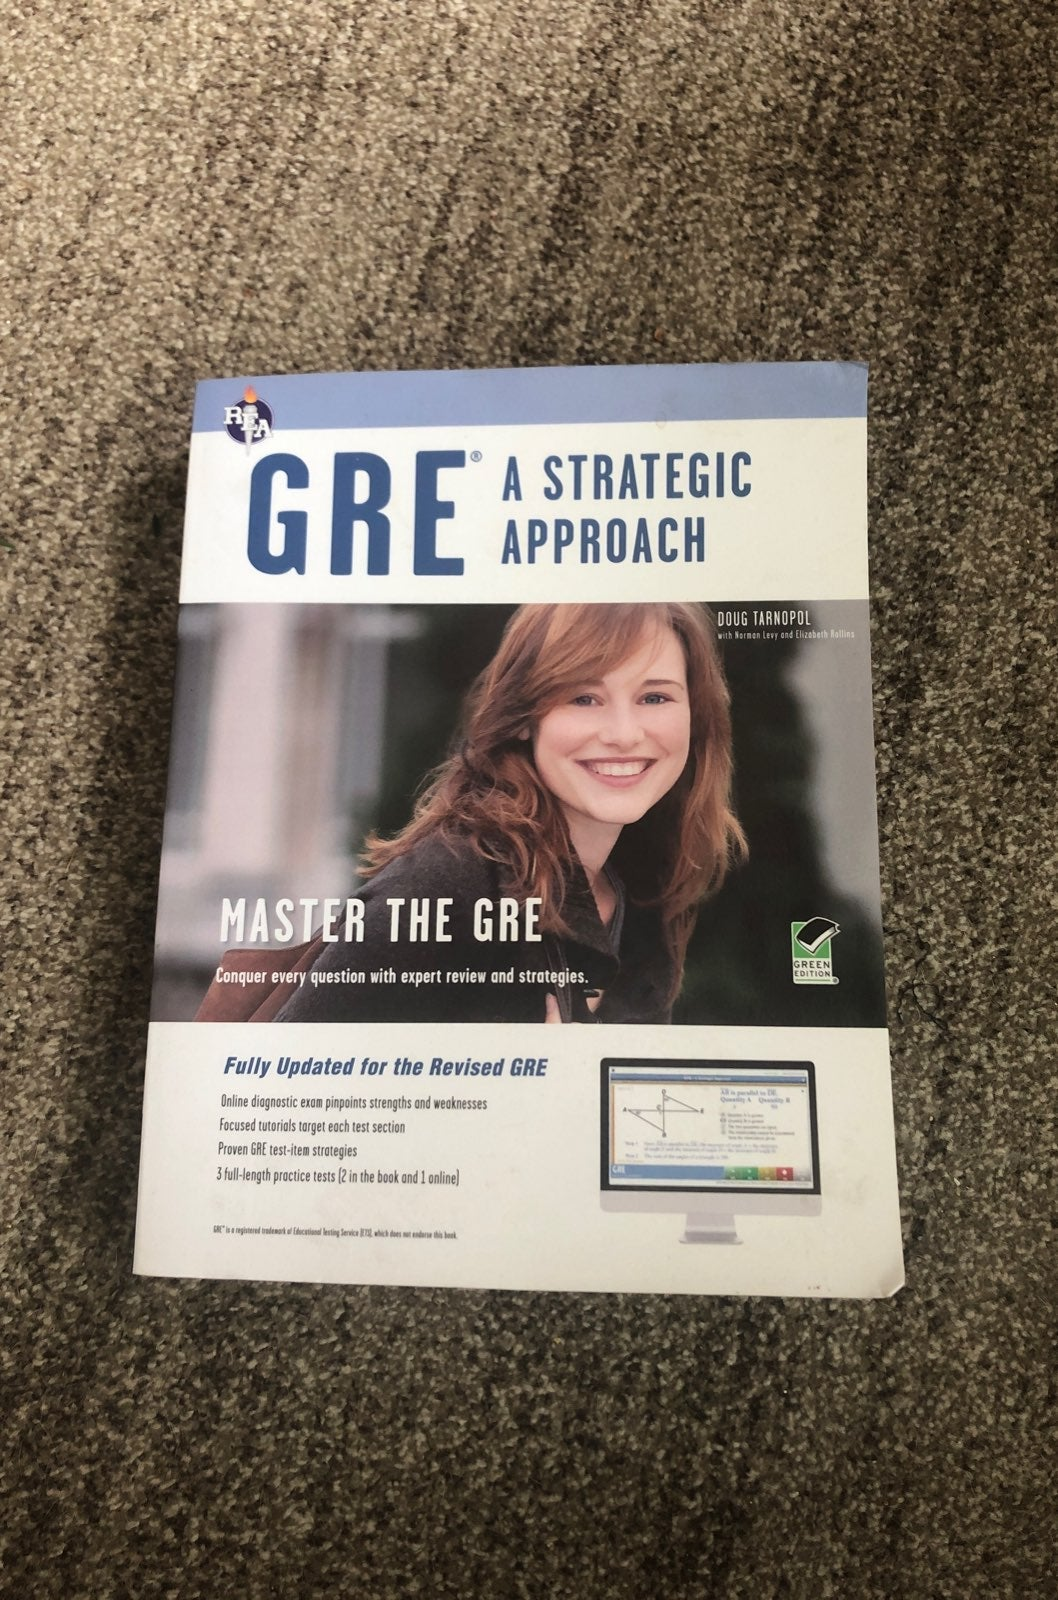 GRE - A Strategic Approach